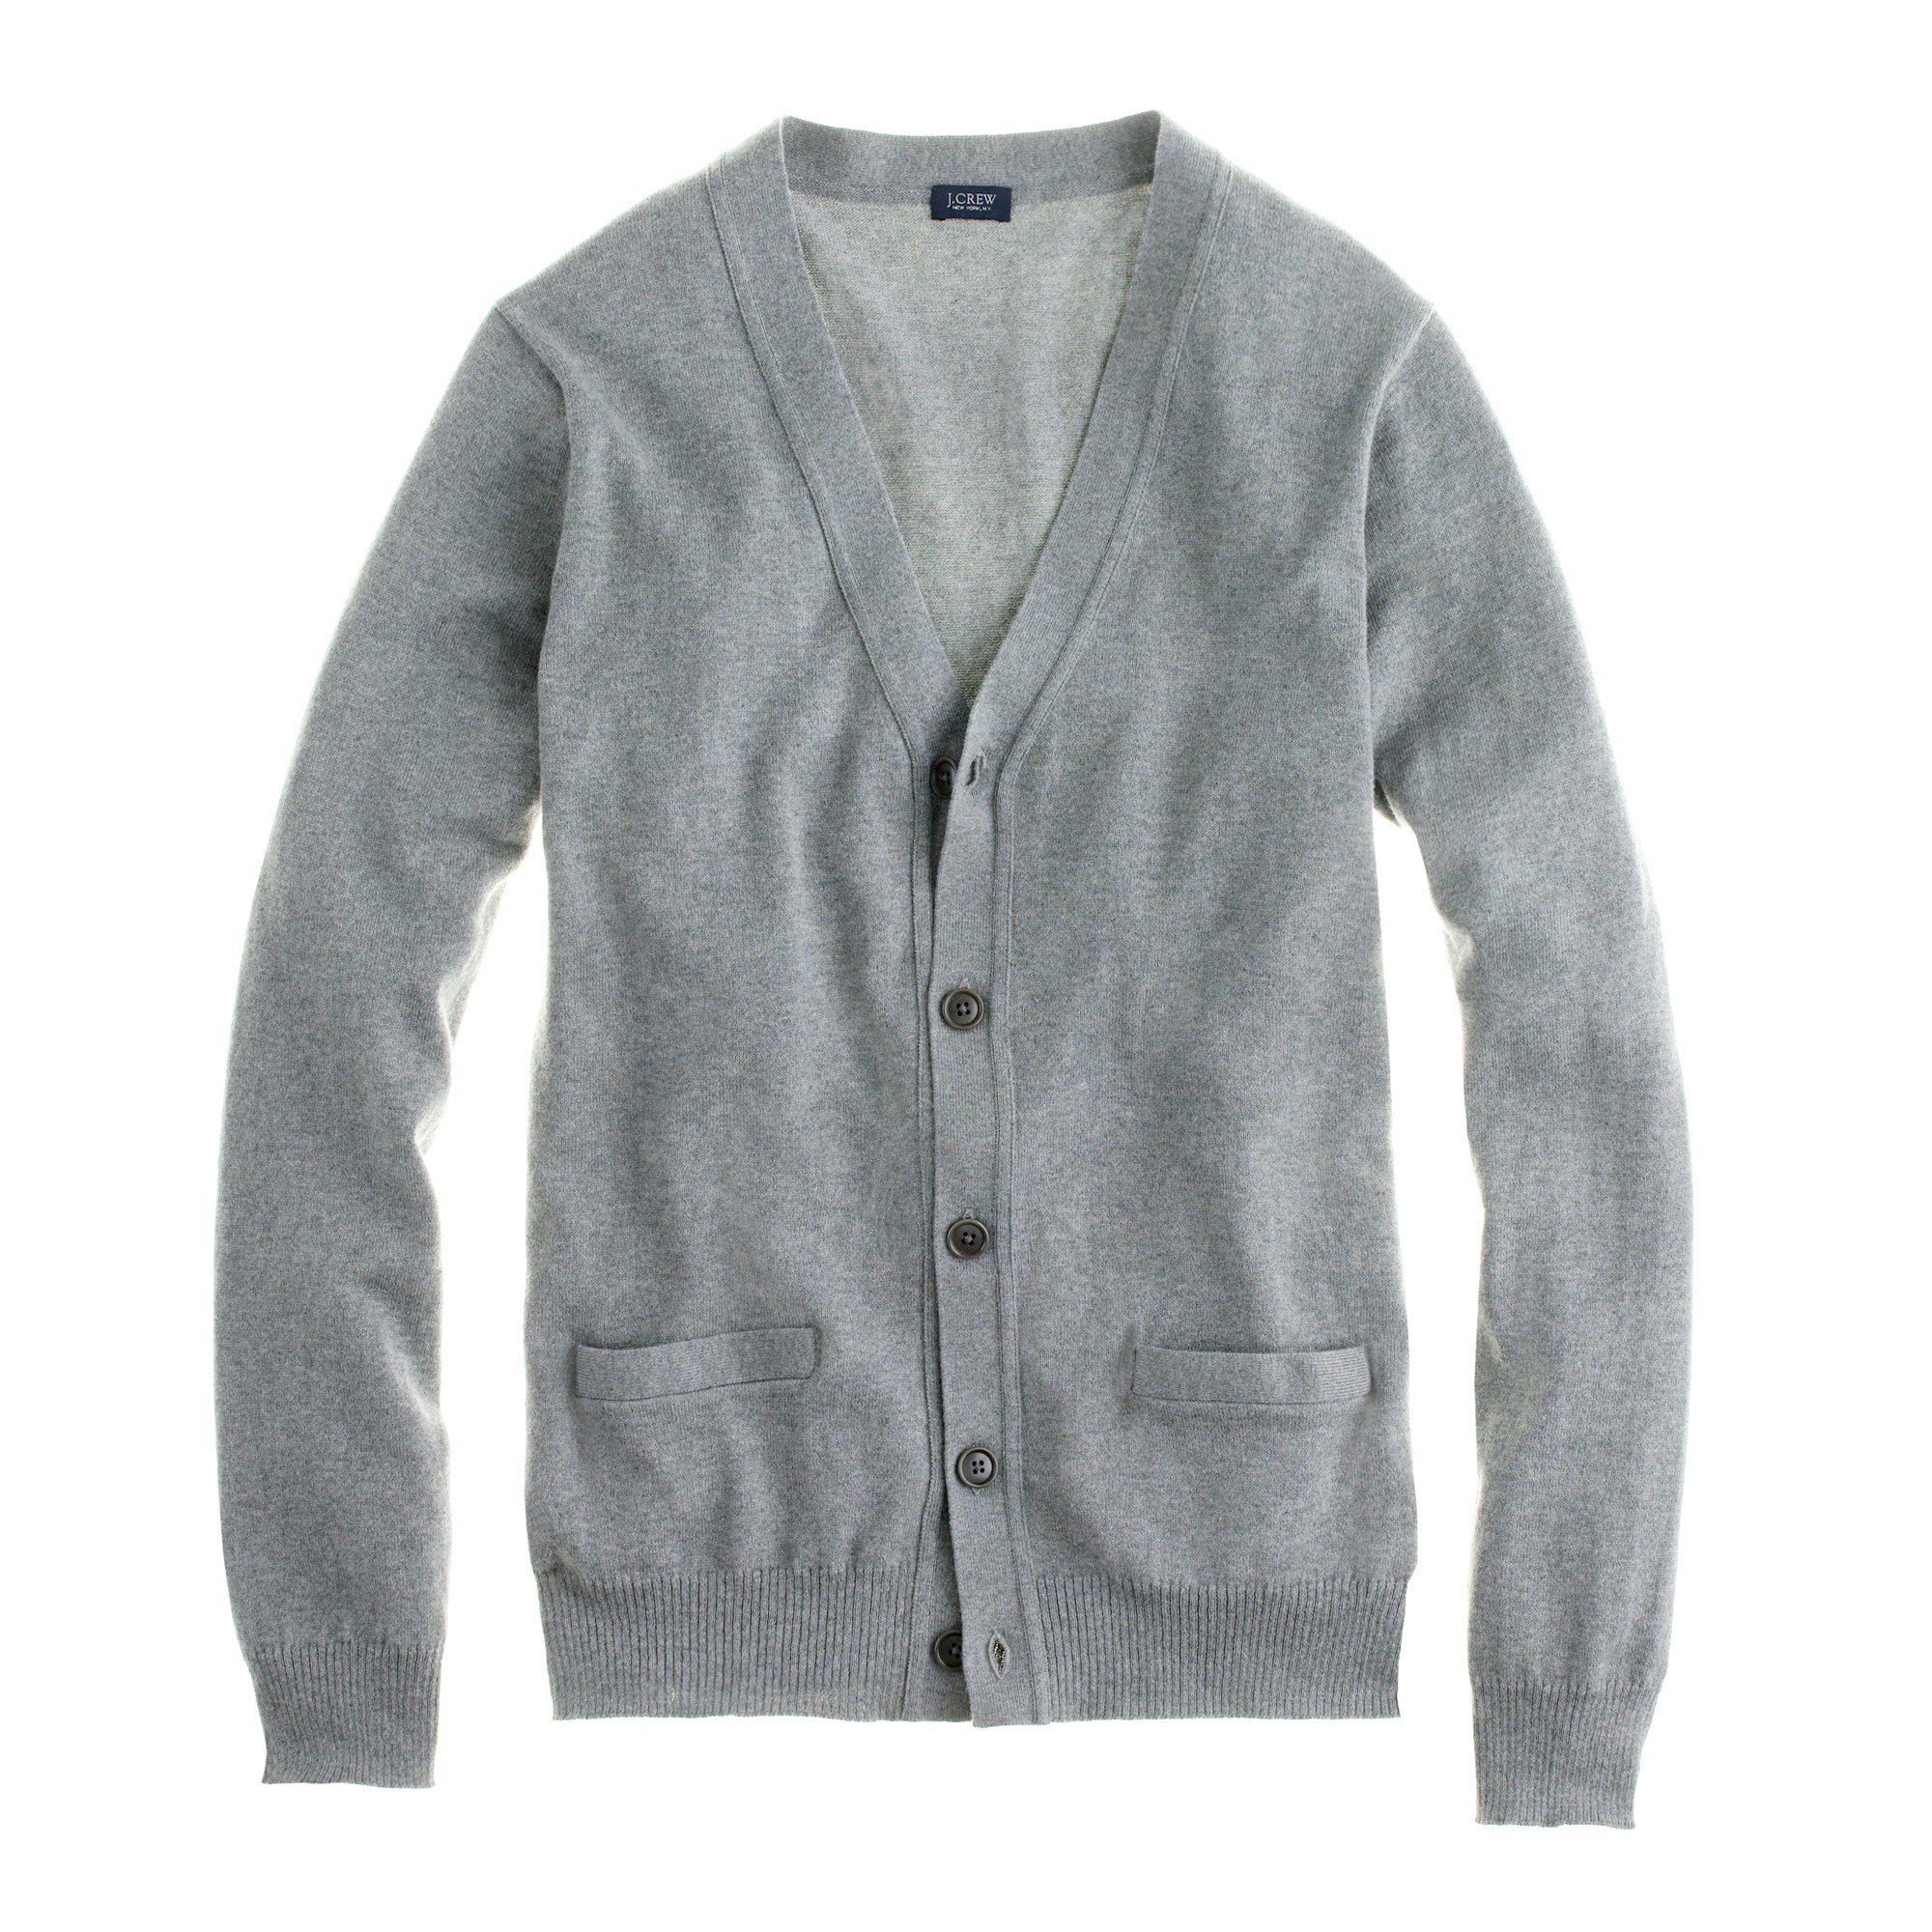 sweater cardigan menu0027s cotton-cashmere cardigan sweater - menu0027s sweaters ZIYTEHQ